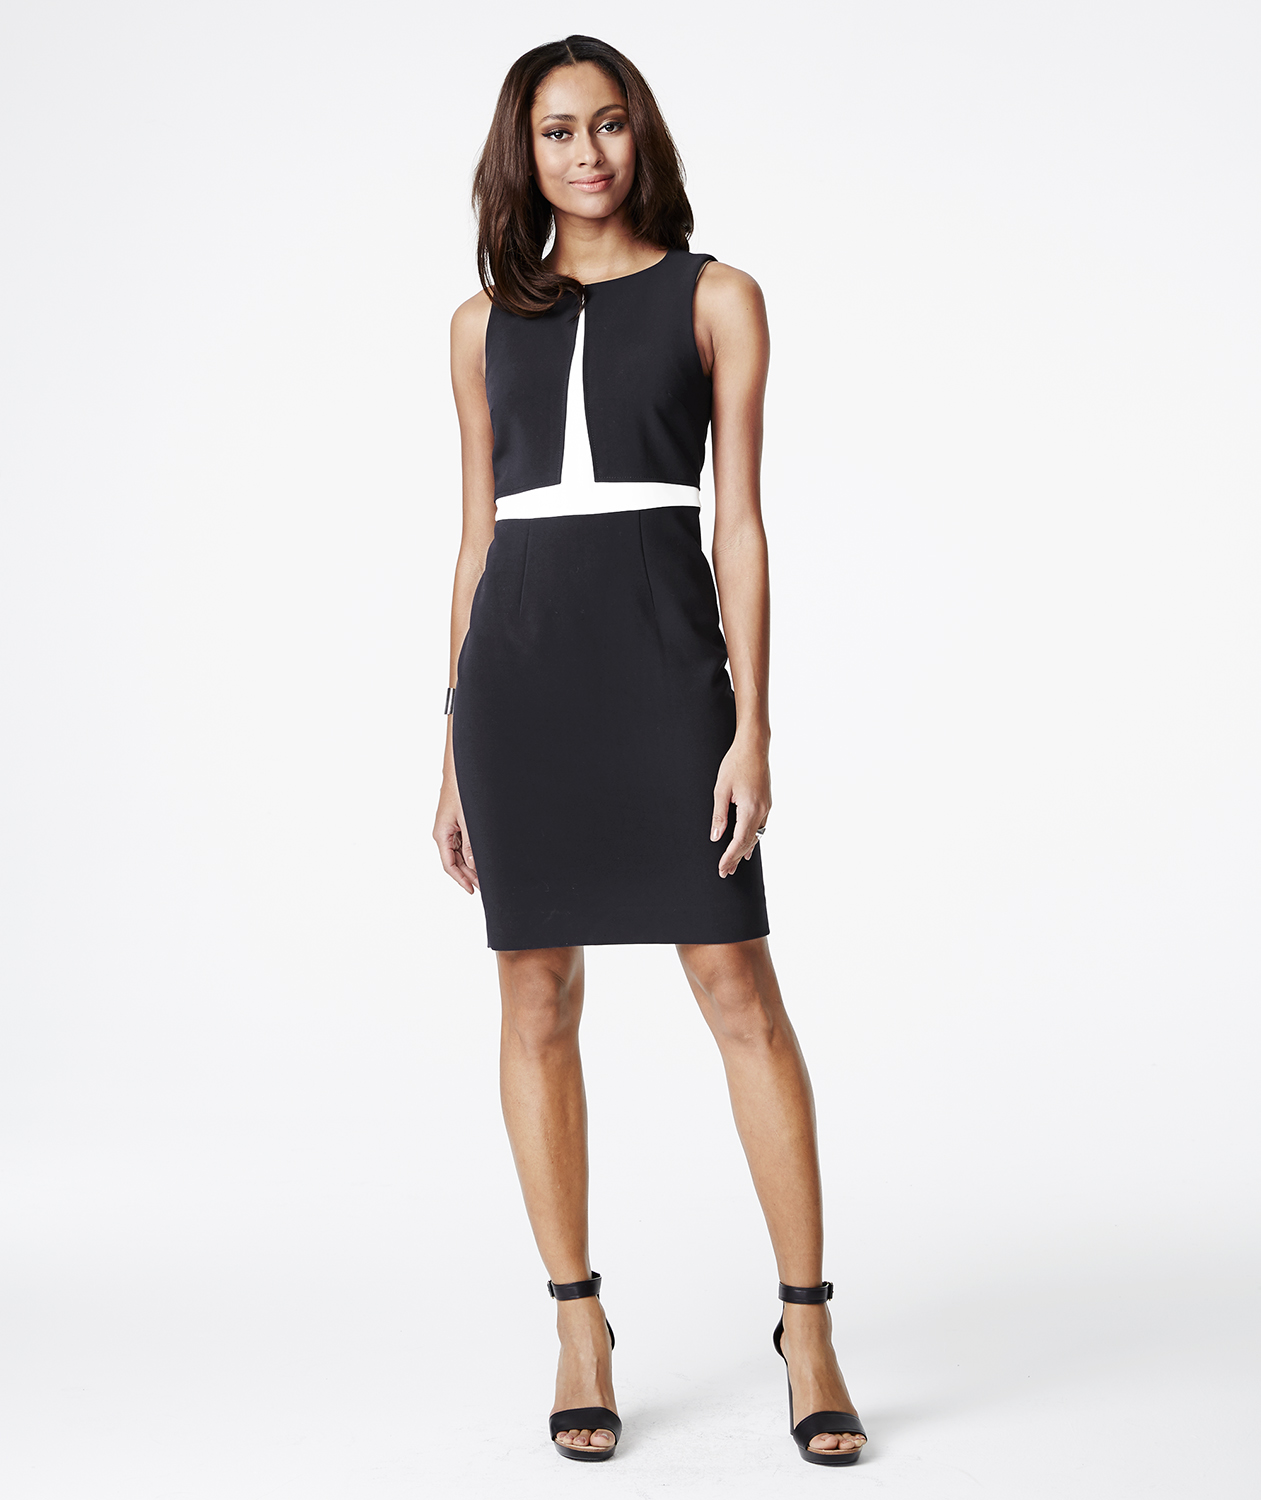 The Limited Colorblocked Sheath Dress